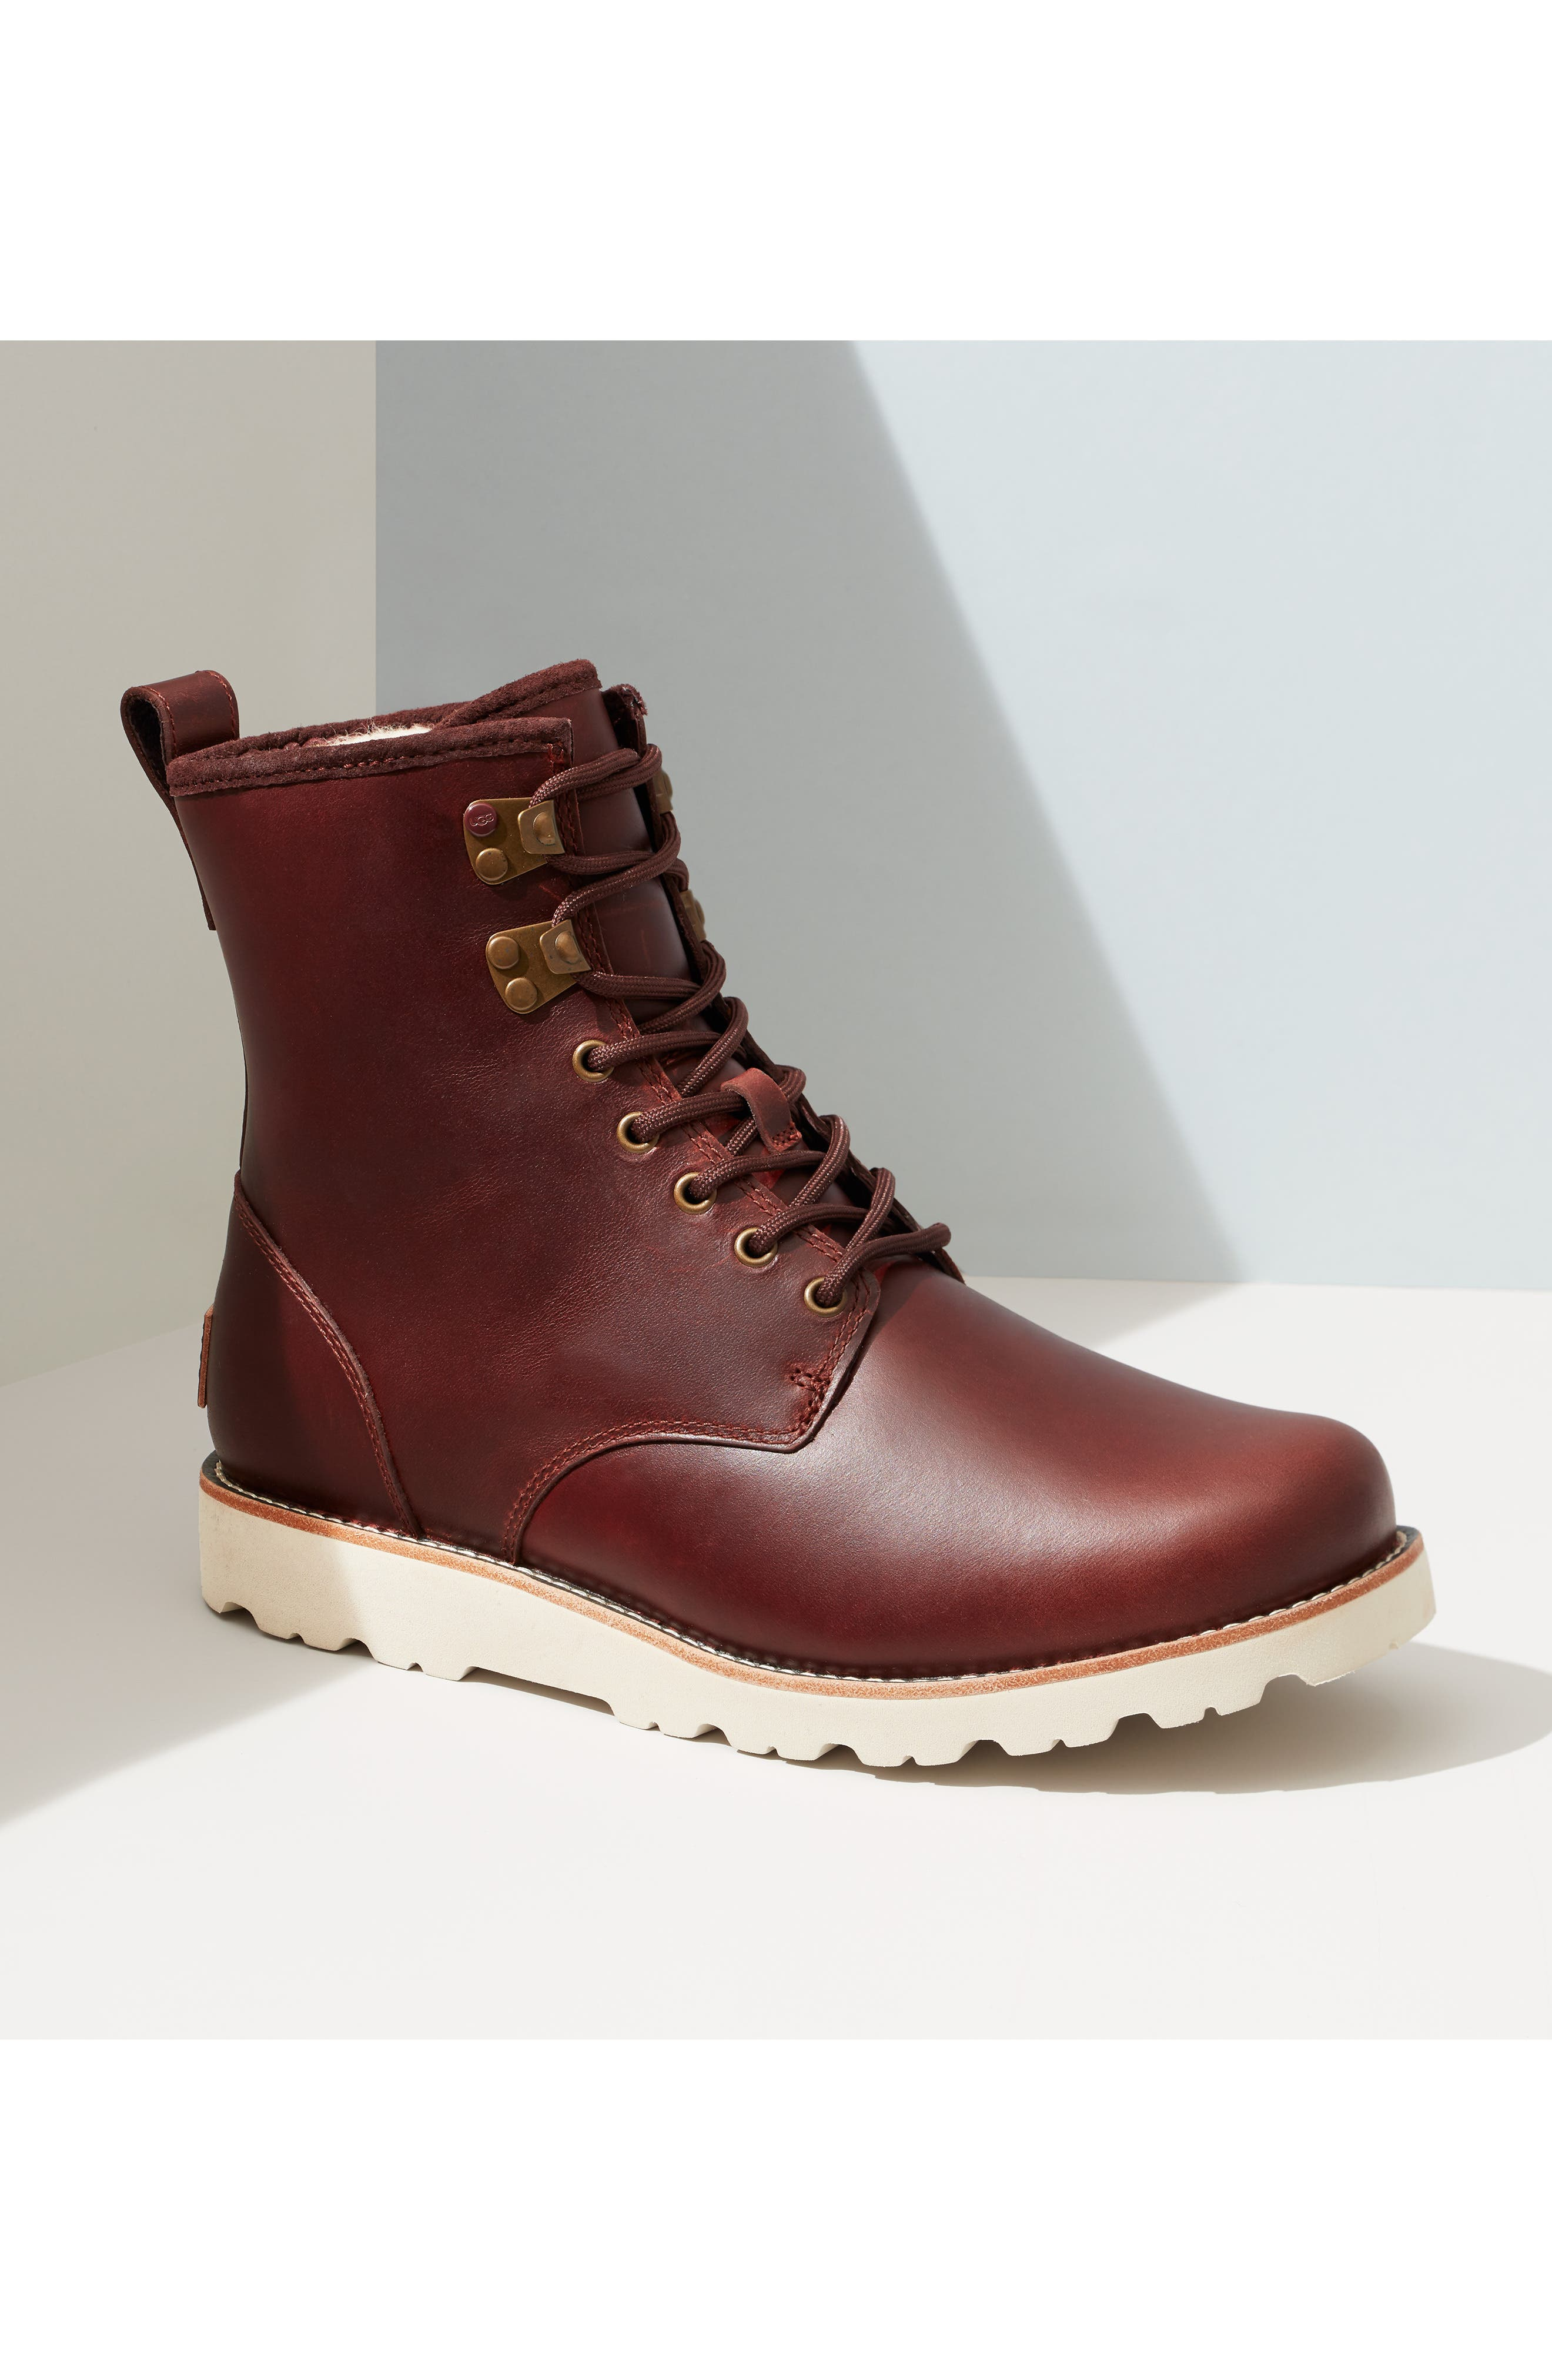 UGG<SUP>®</SUP>, Hannen Waterproof Boot, Alternate thumbnail 5, color, 604